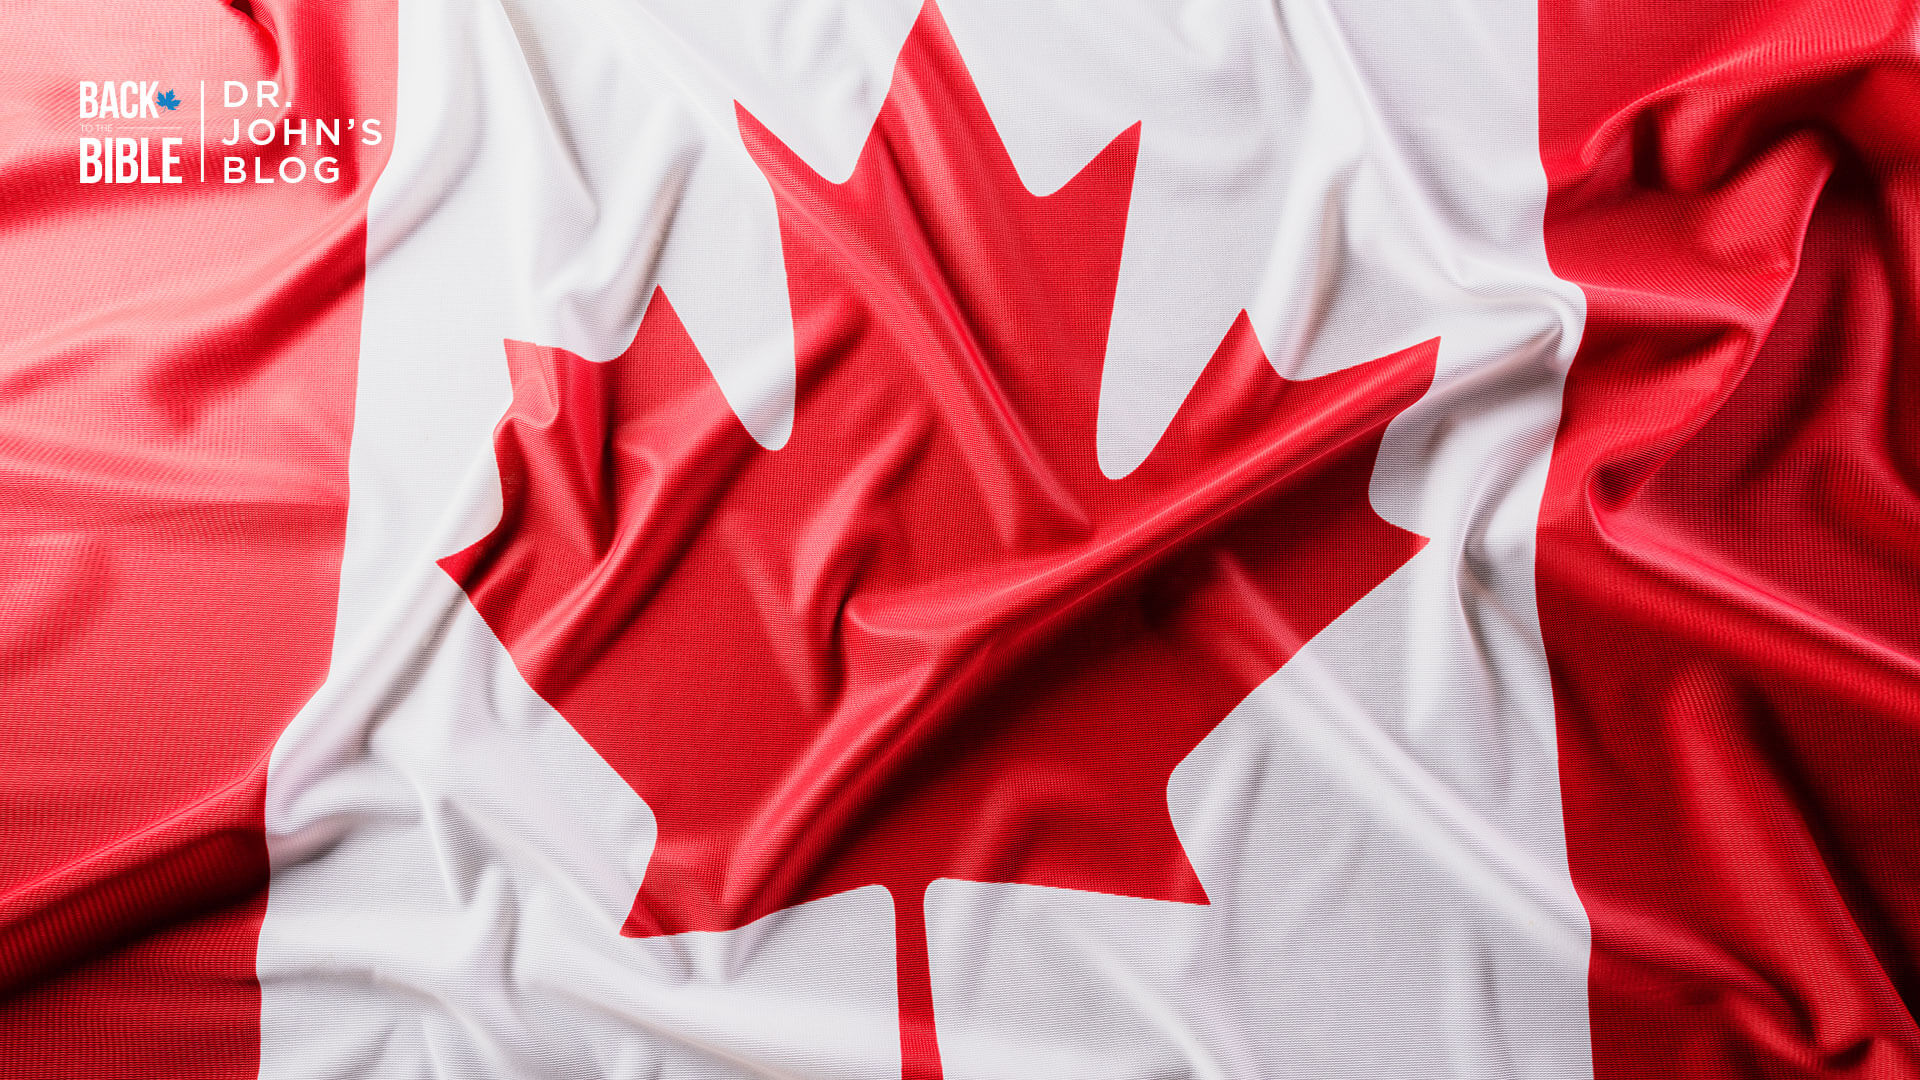 Reclaiming Canada for Christ by Dr. John Neufeld | Back to the Bible Canada